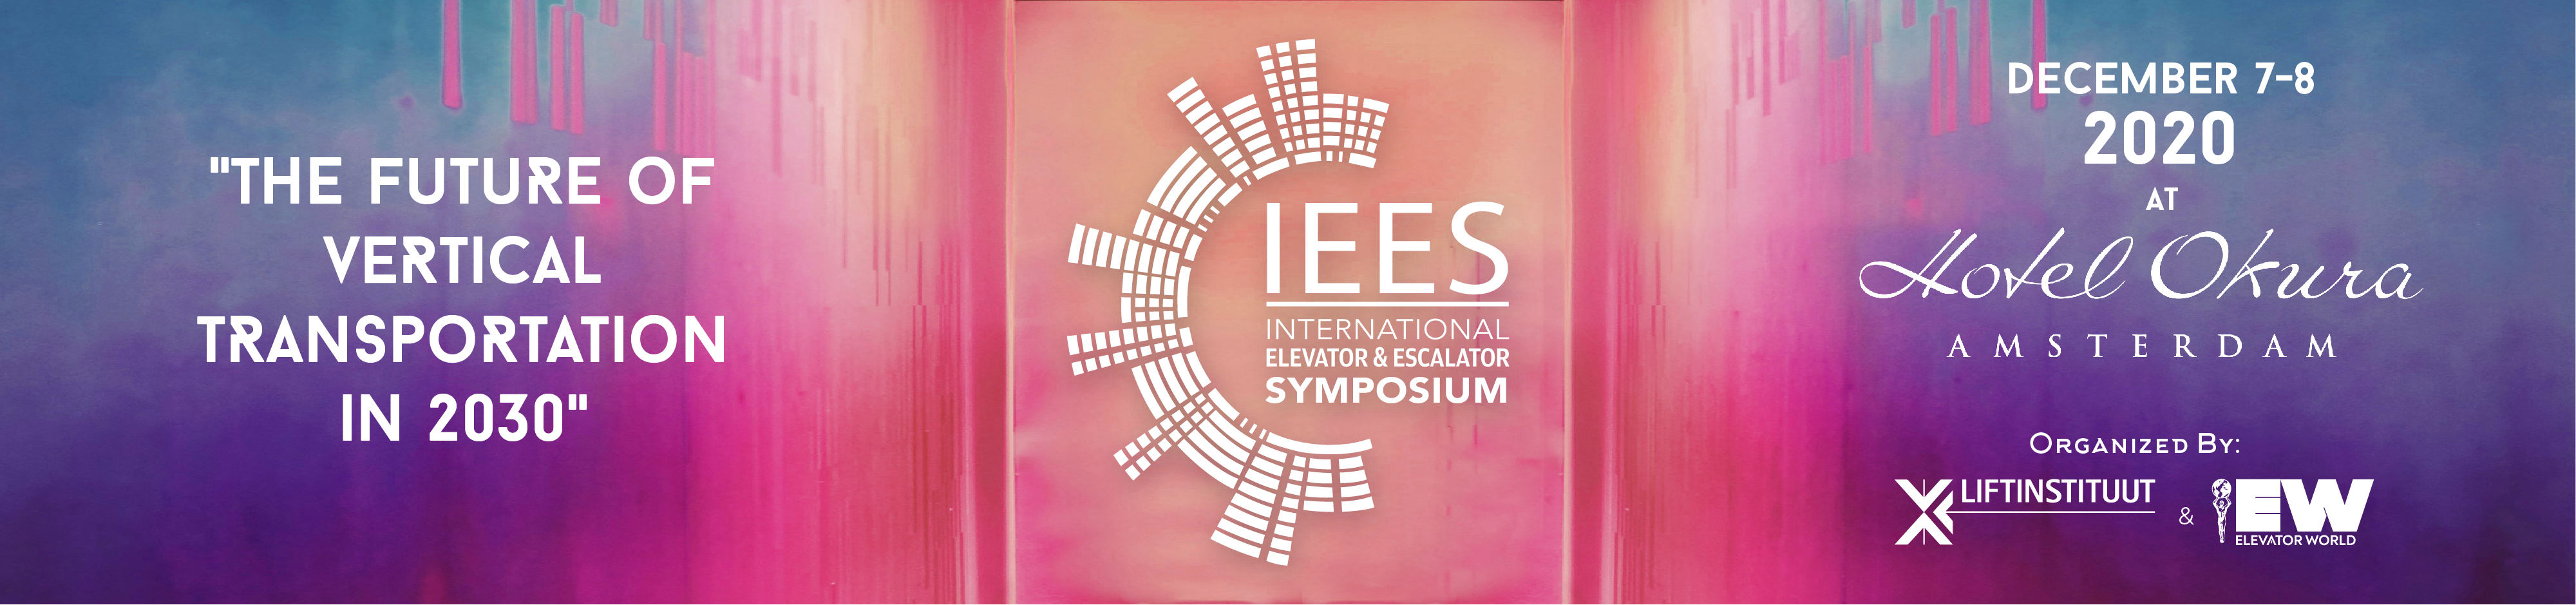 IEES International Elevator & Escalator Symposium 2020